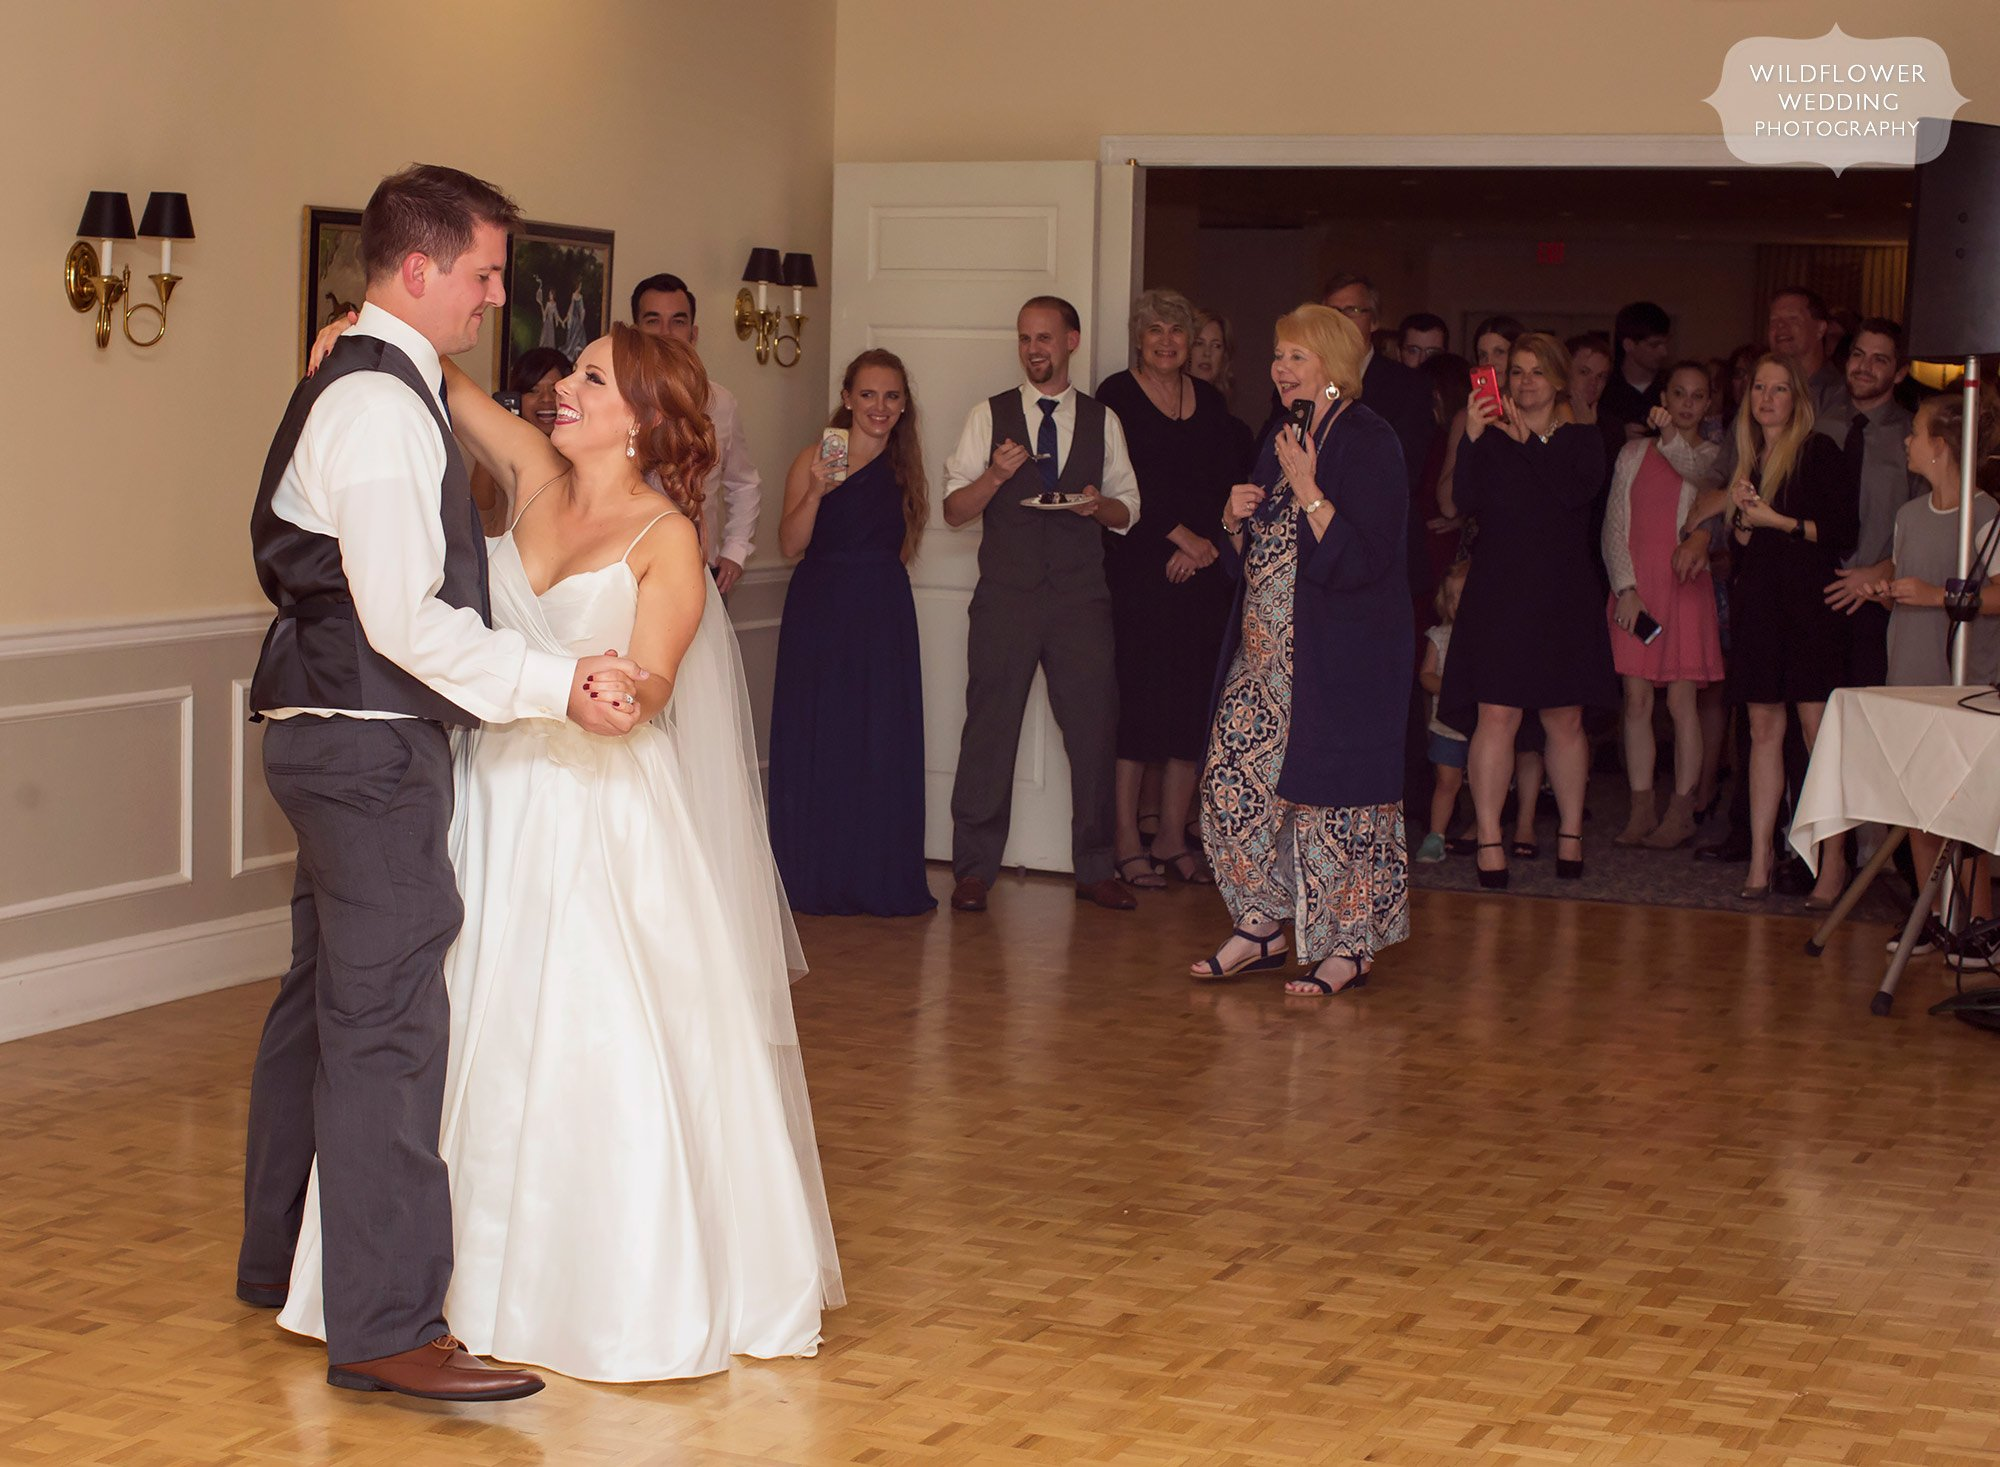 Romantic wedding dance of bride and groom at Jeff City Country Club.